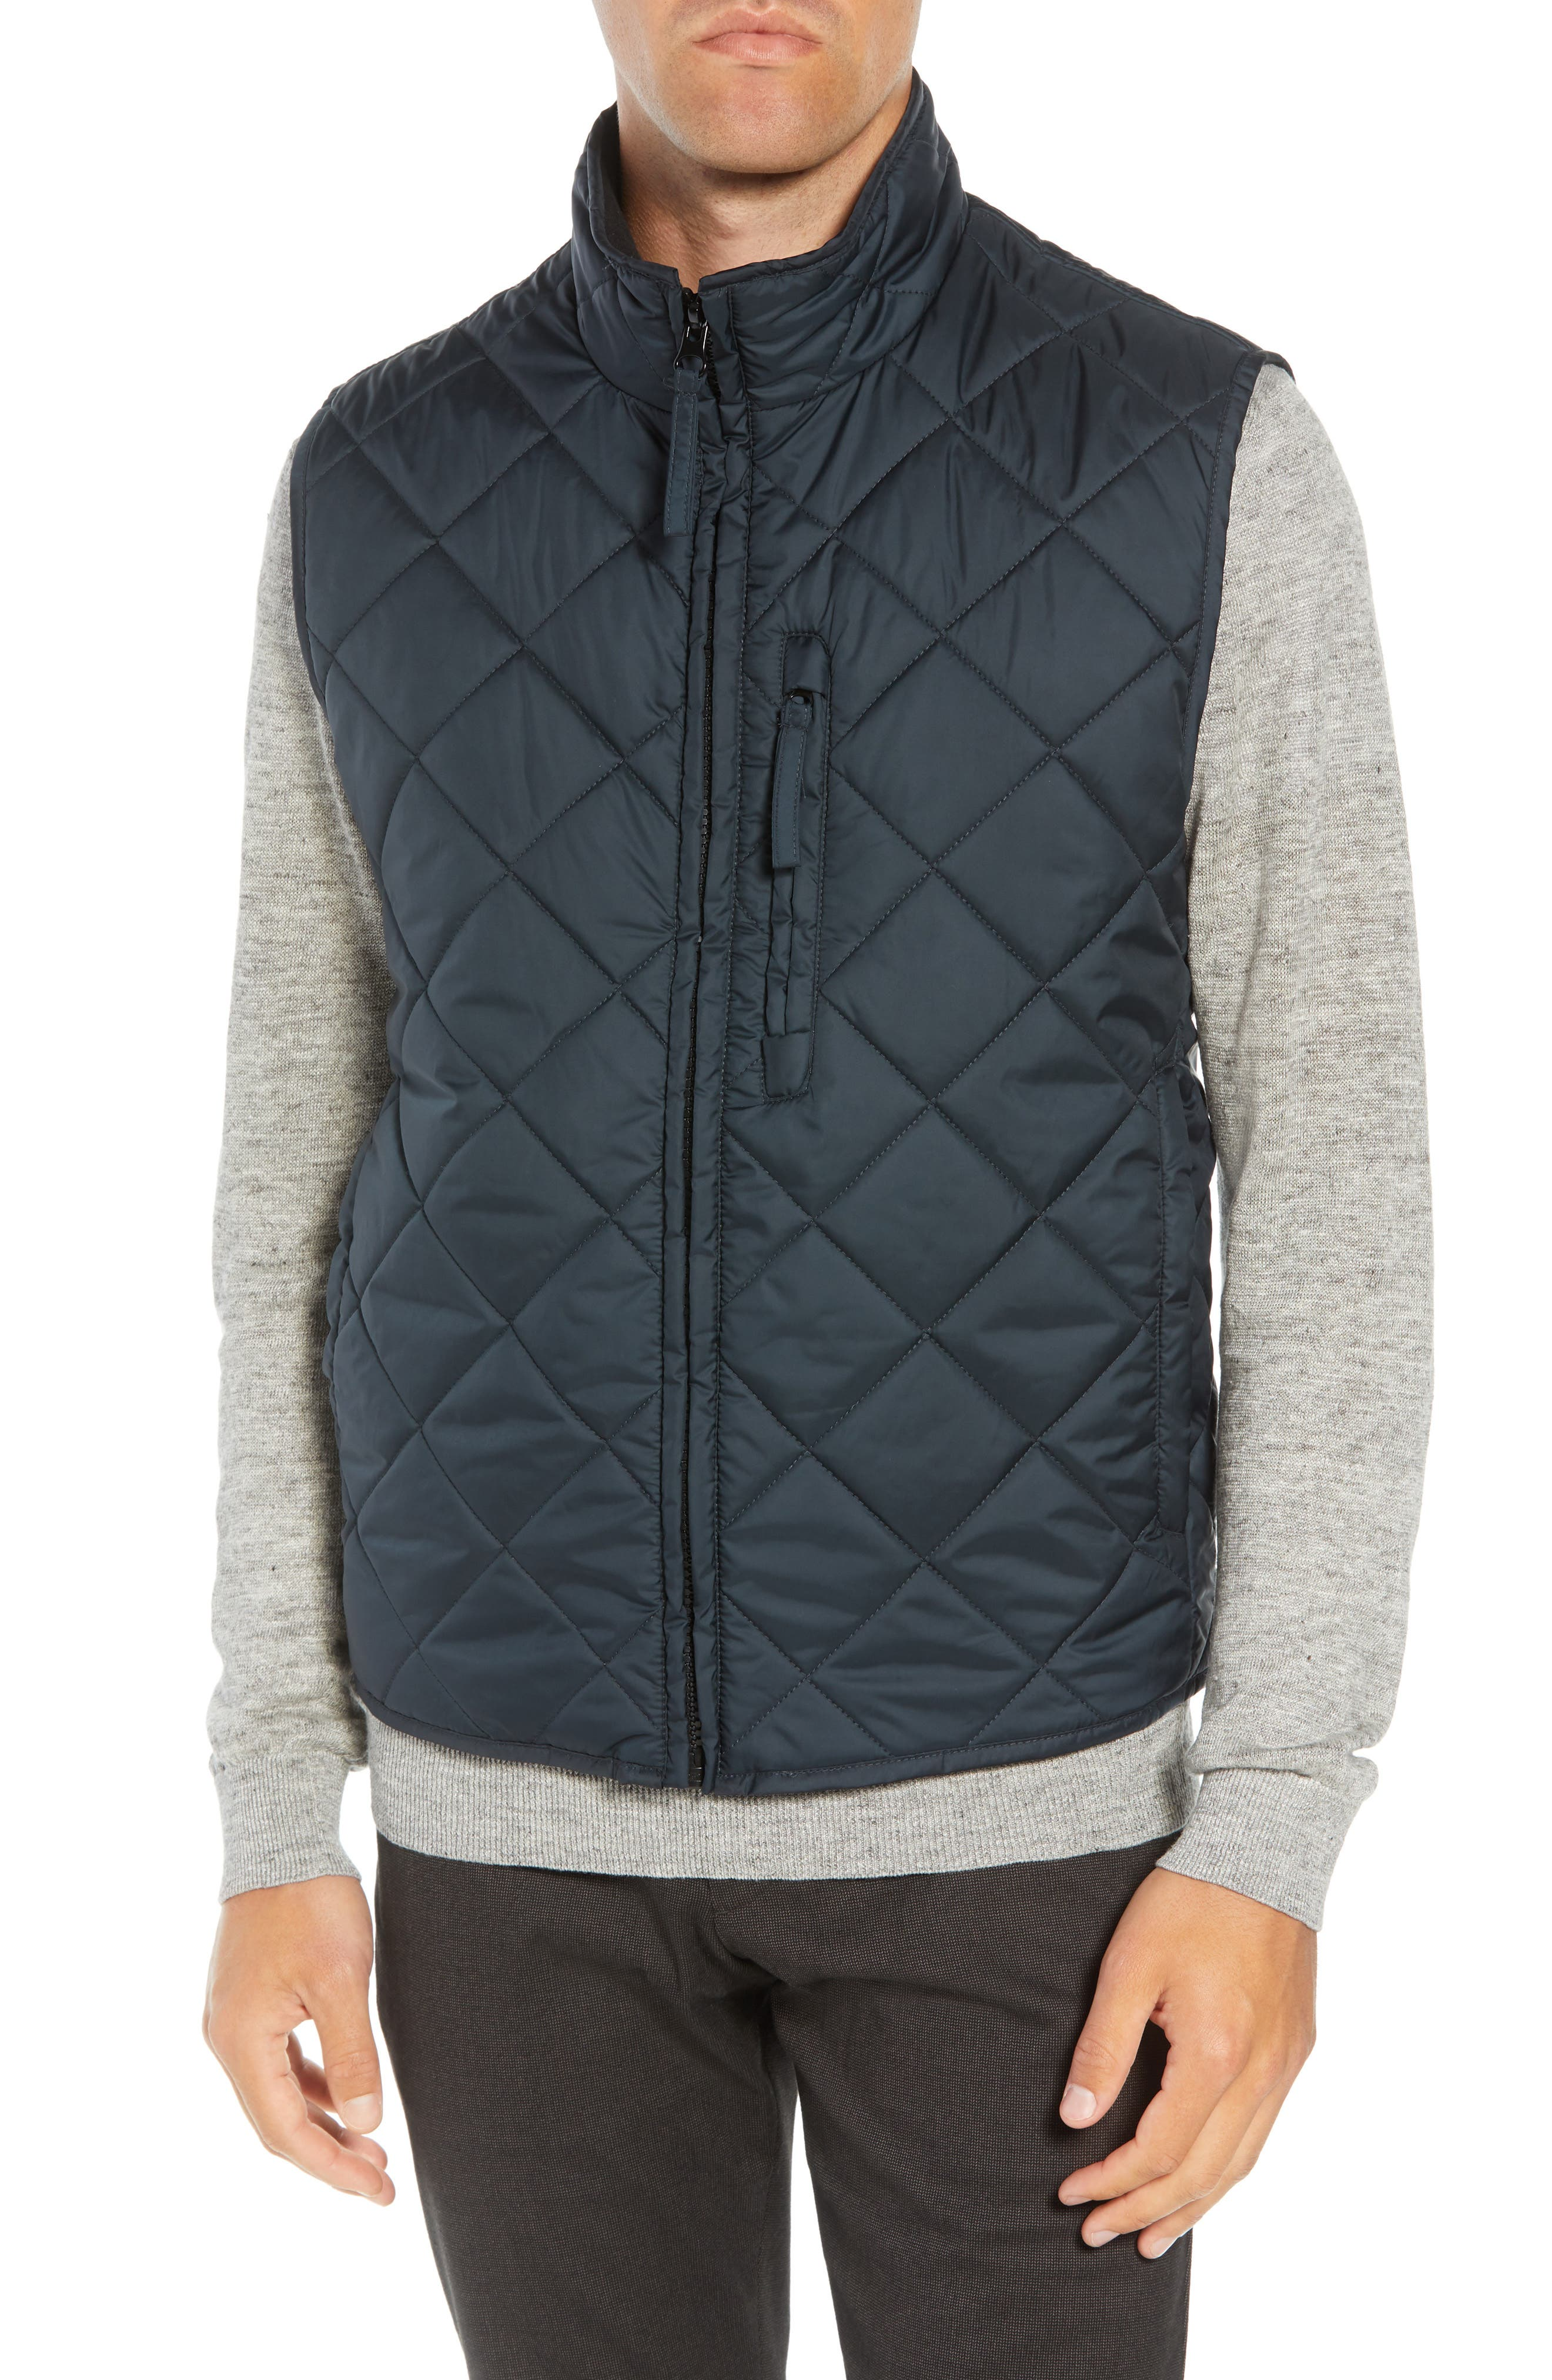 MARC NEW YORK, Chester Packable Quilted Vest, Alternate thumbnail 5, color, BLACK